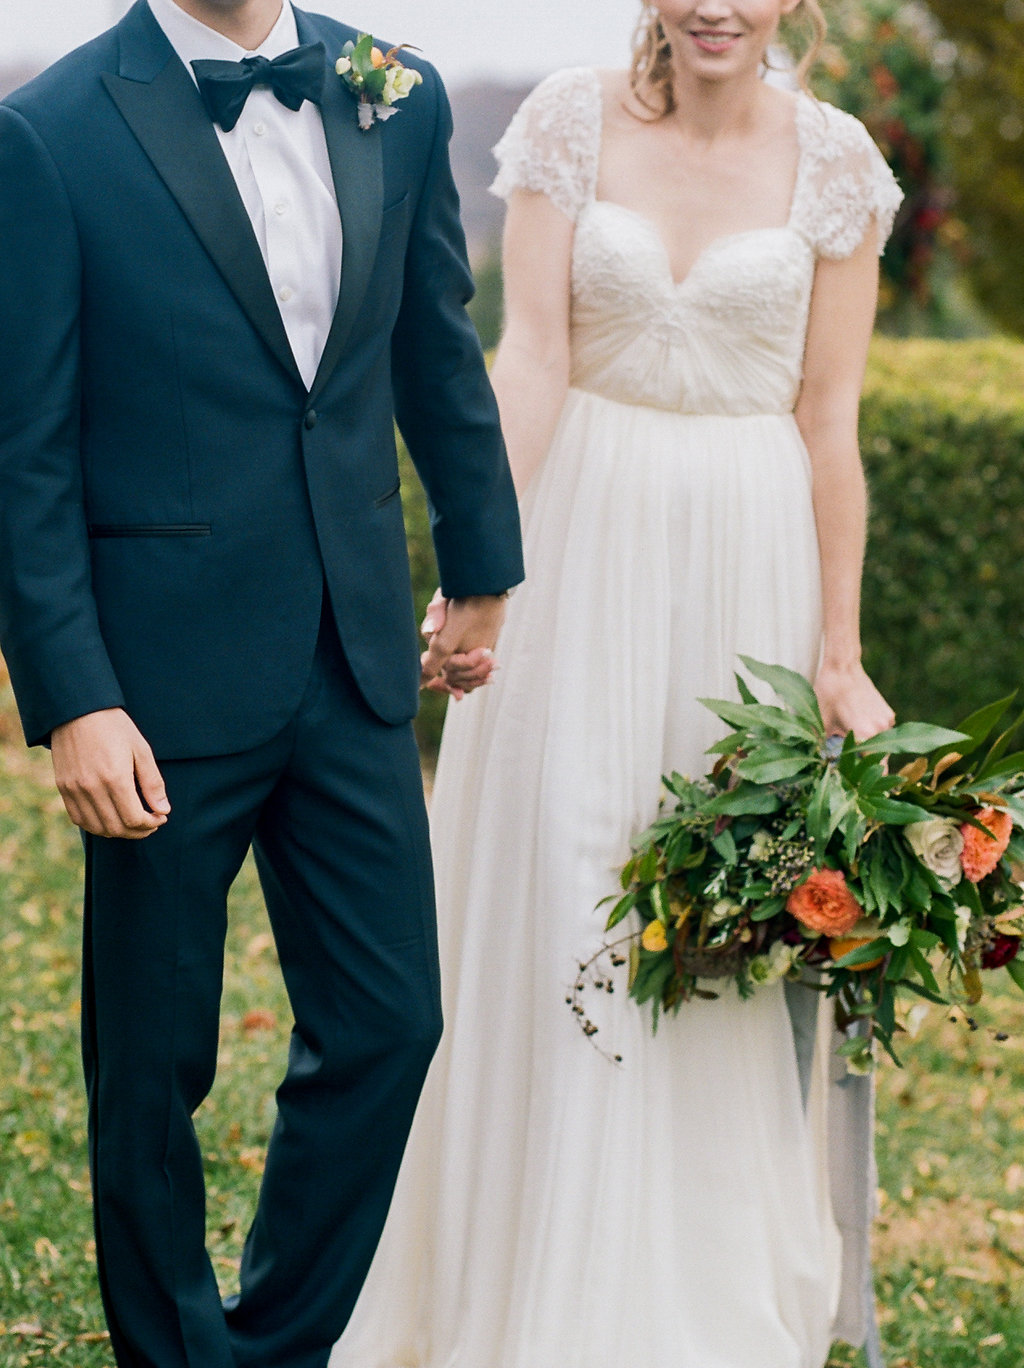 Modern Romantic Wedding Ideas with Family Heirlooms - photo by Lissa Ryan Photography http://ruffledblog.com/modern-romantic-wedding-ideas-with-family-heirlooms